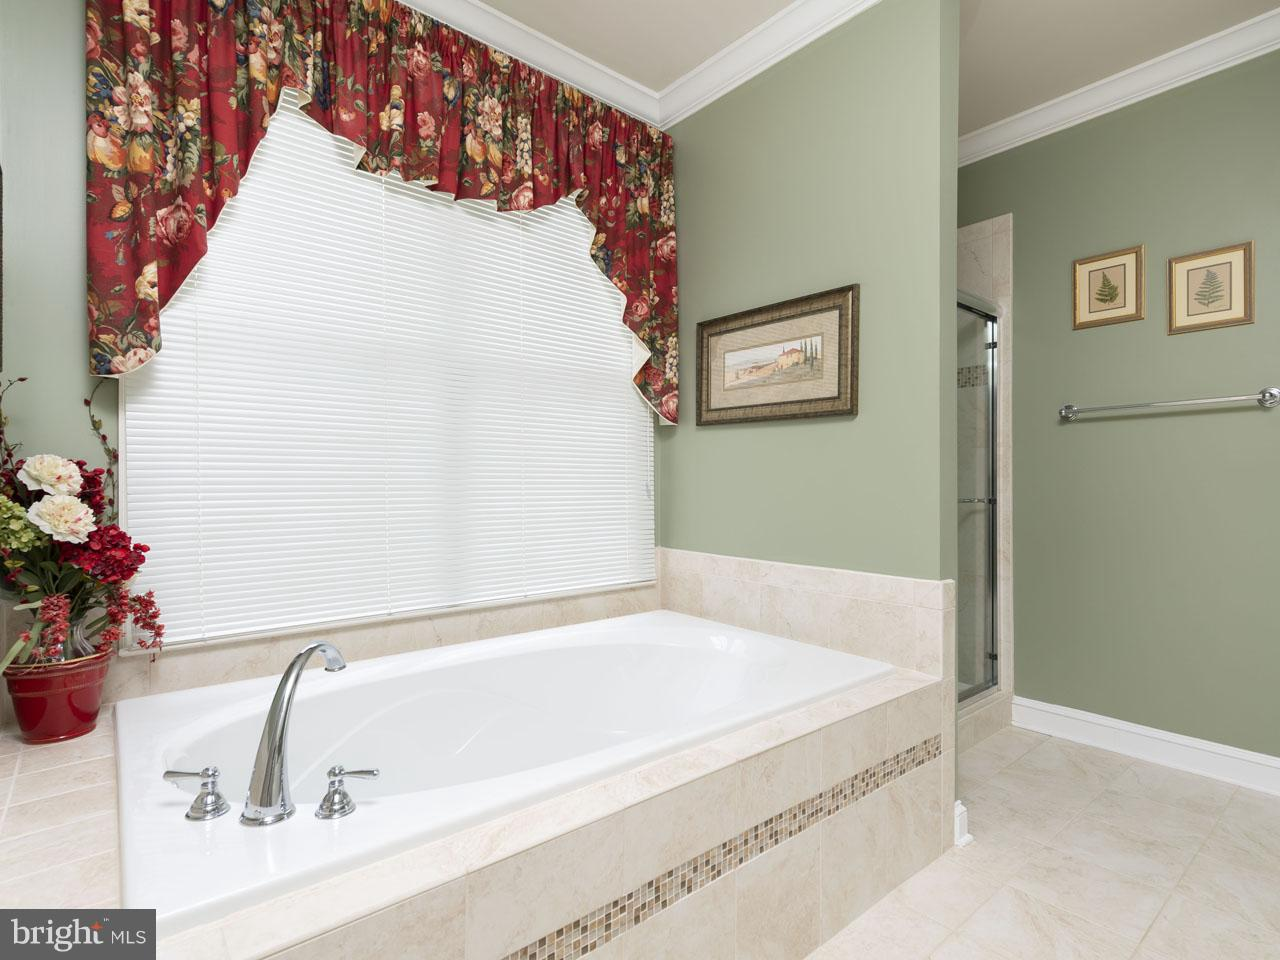 1005040466-300638082852-2021-07-22-06-45-08        Gainesville Delaware Real Estate For Sale   MLS# 1005040466  - Best of Northern Virginia